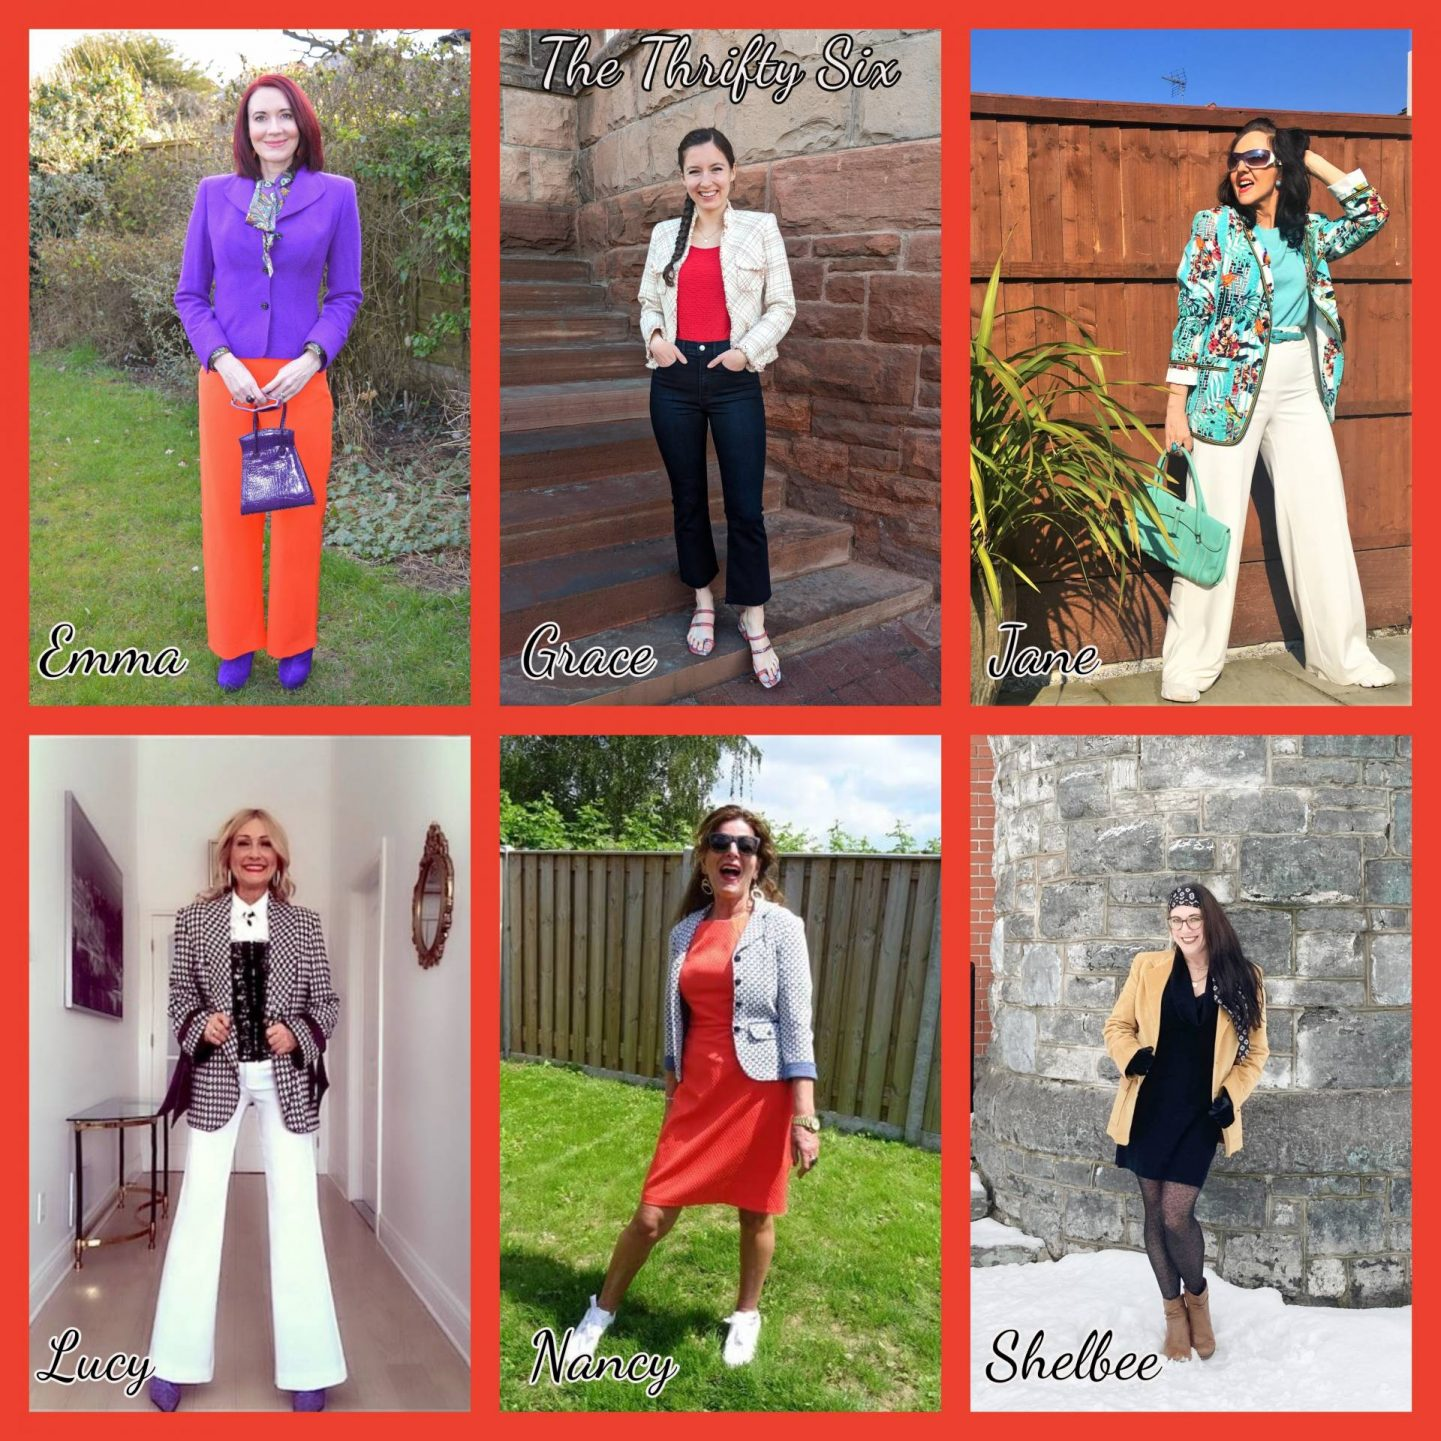 """We Are Trail """"Blazers"""" - March Thrifty Six Collaboration"""